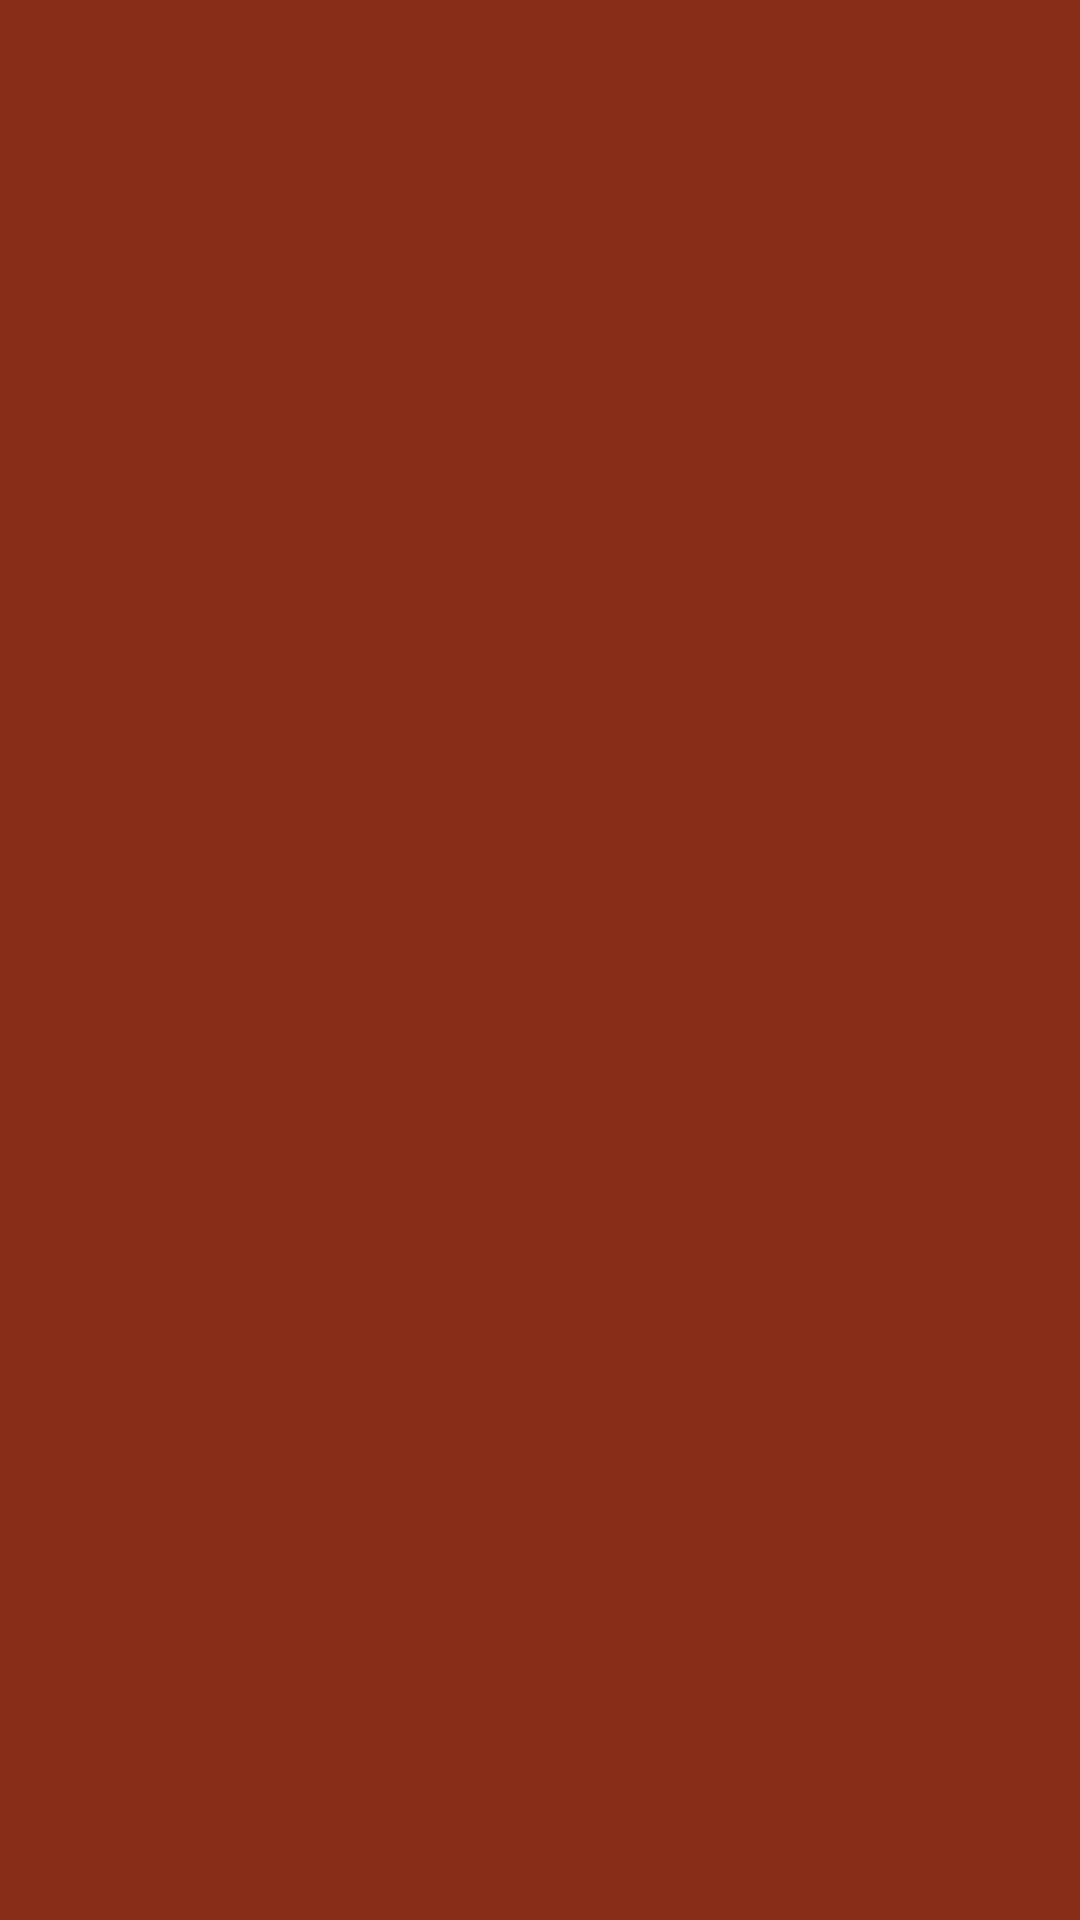 1080x1920 Sienna Solid Color Background